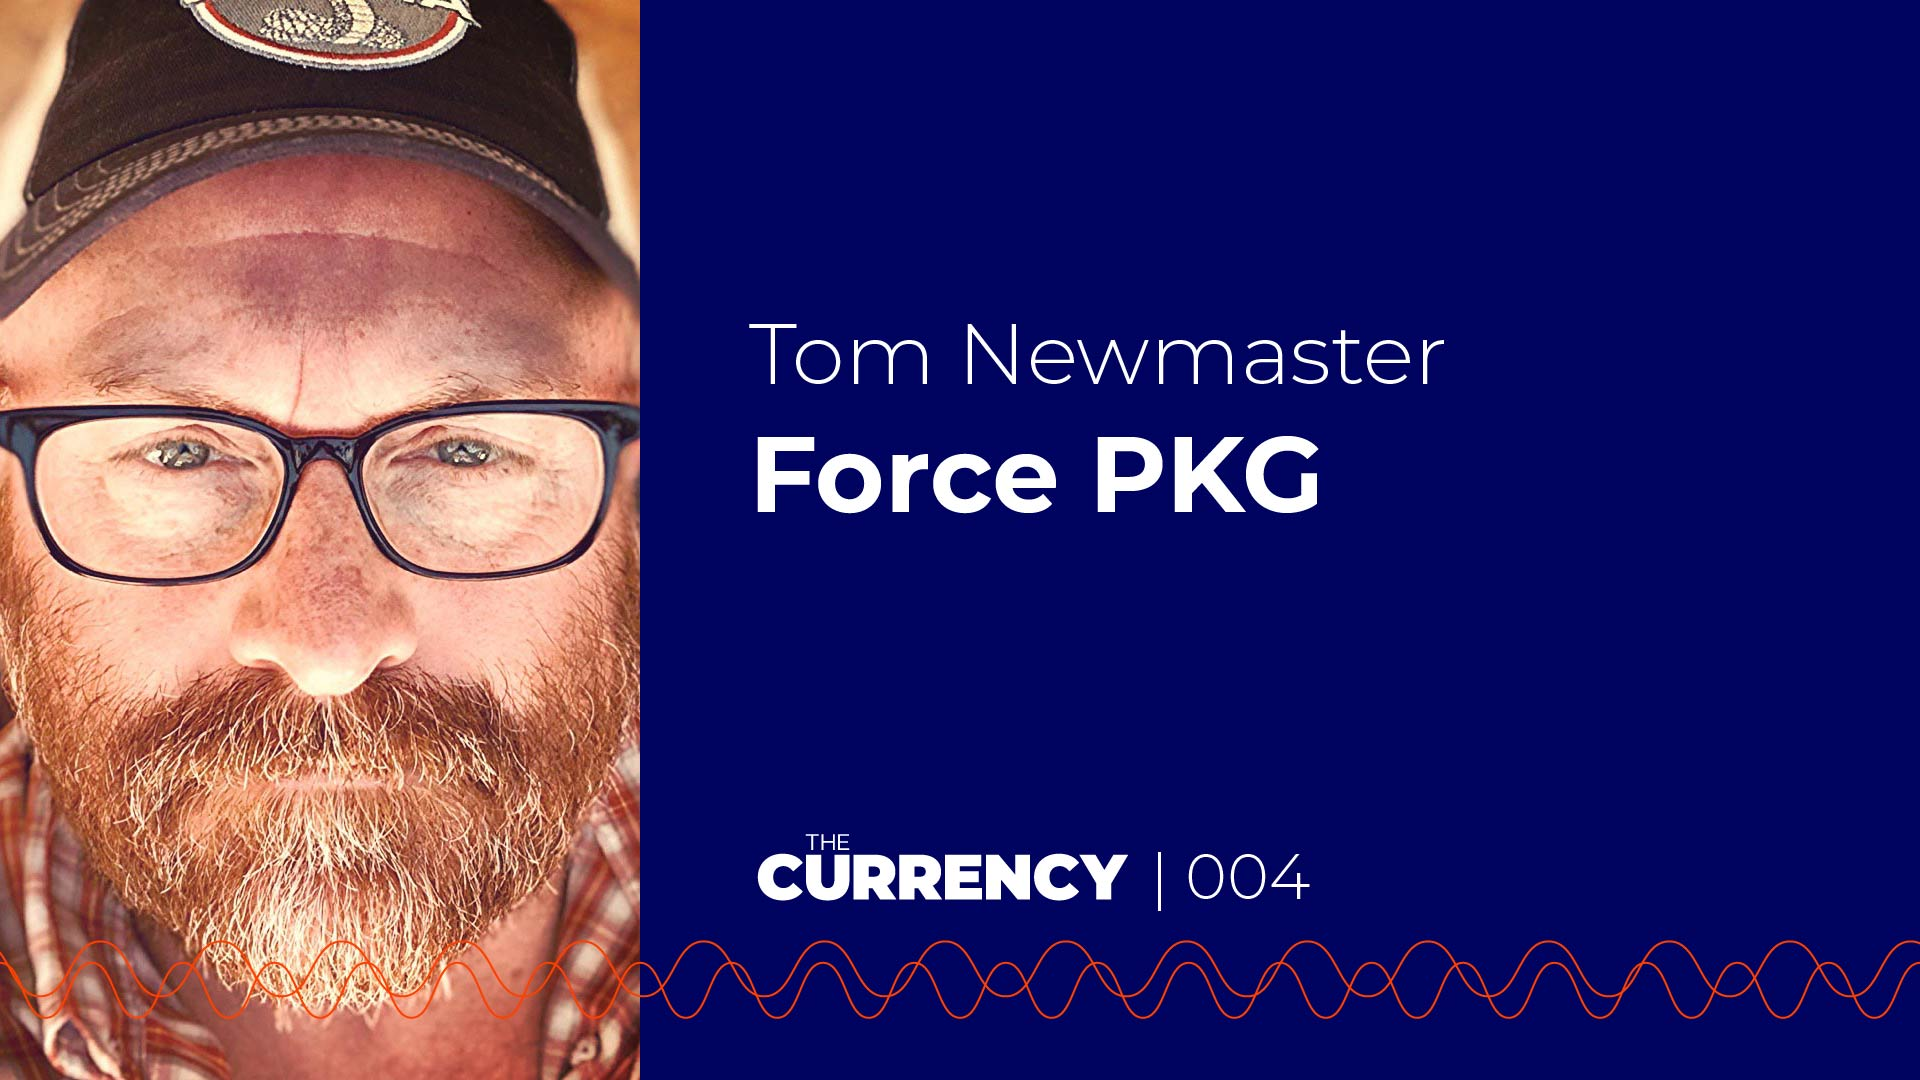 The Currency: [004] Tom Newmaster & Force PKG